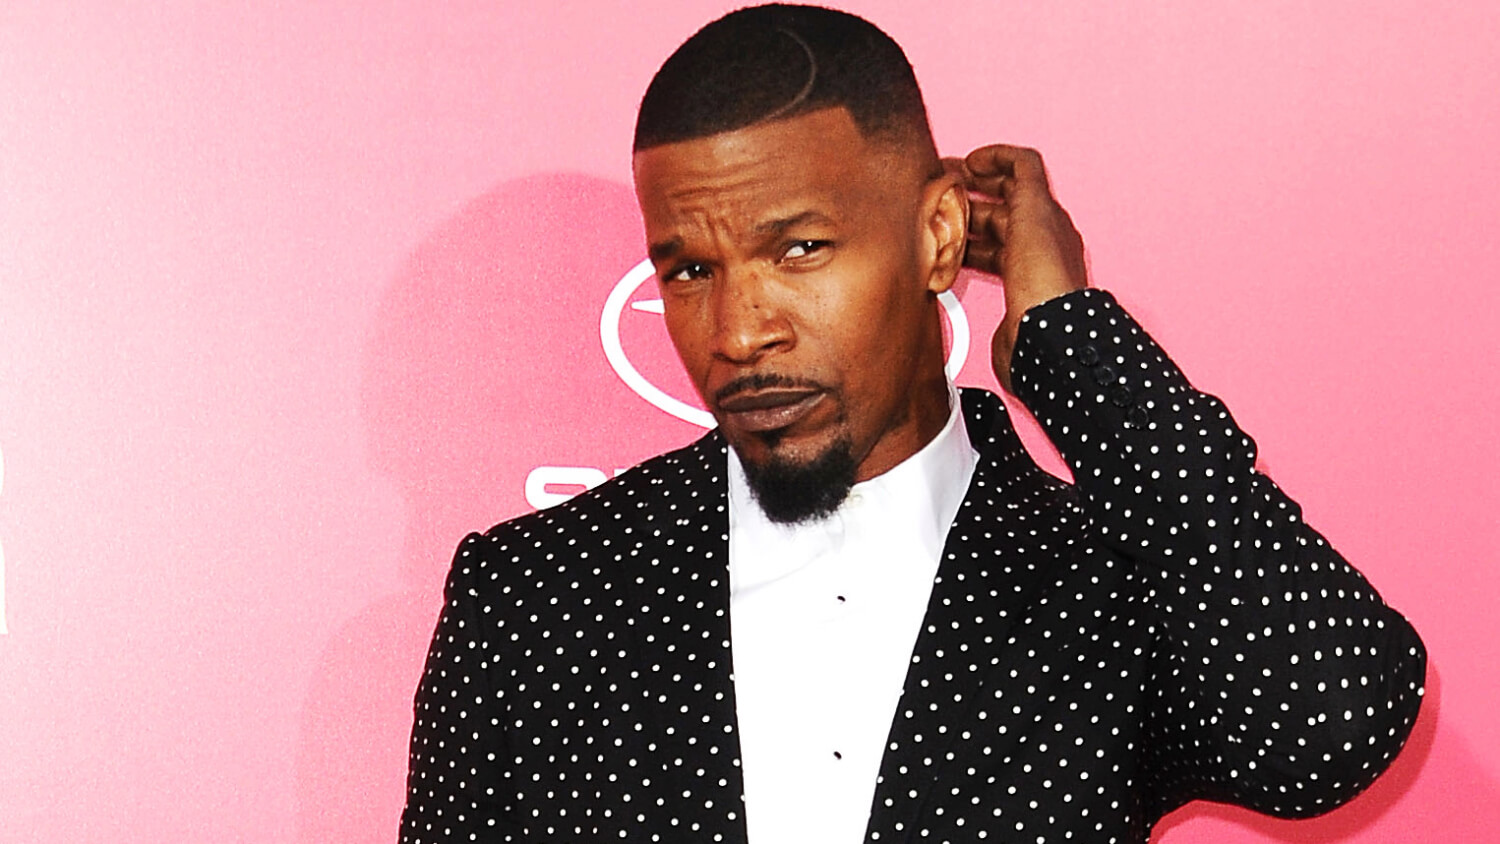 Jamie Foxx has started working out to look the part/Photo Credit: Getty Images